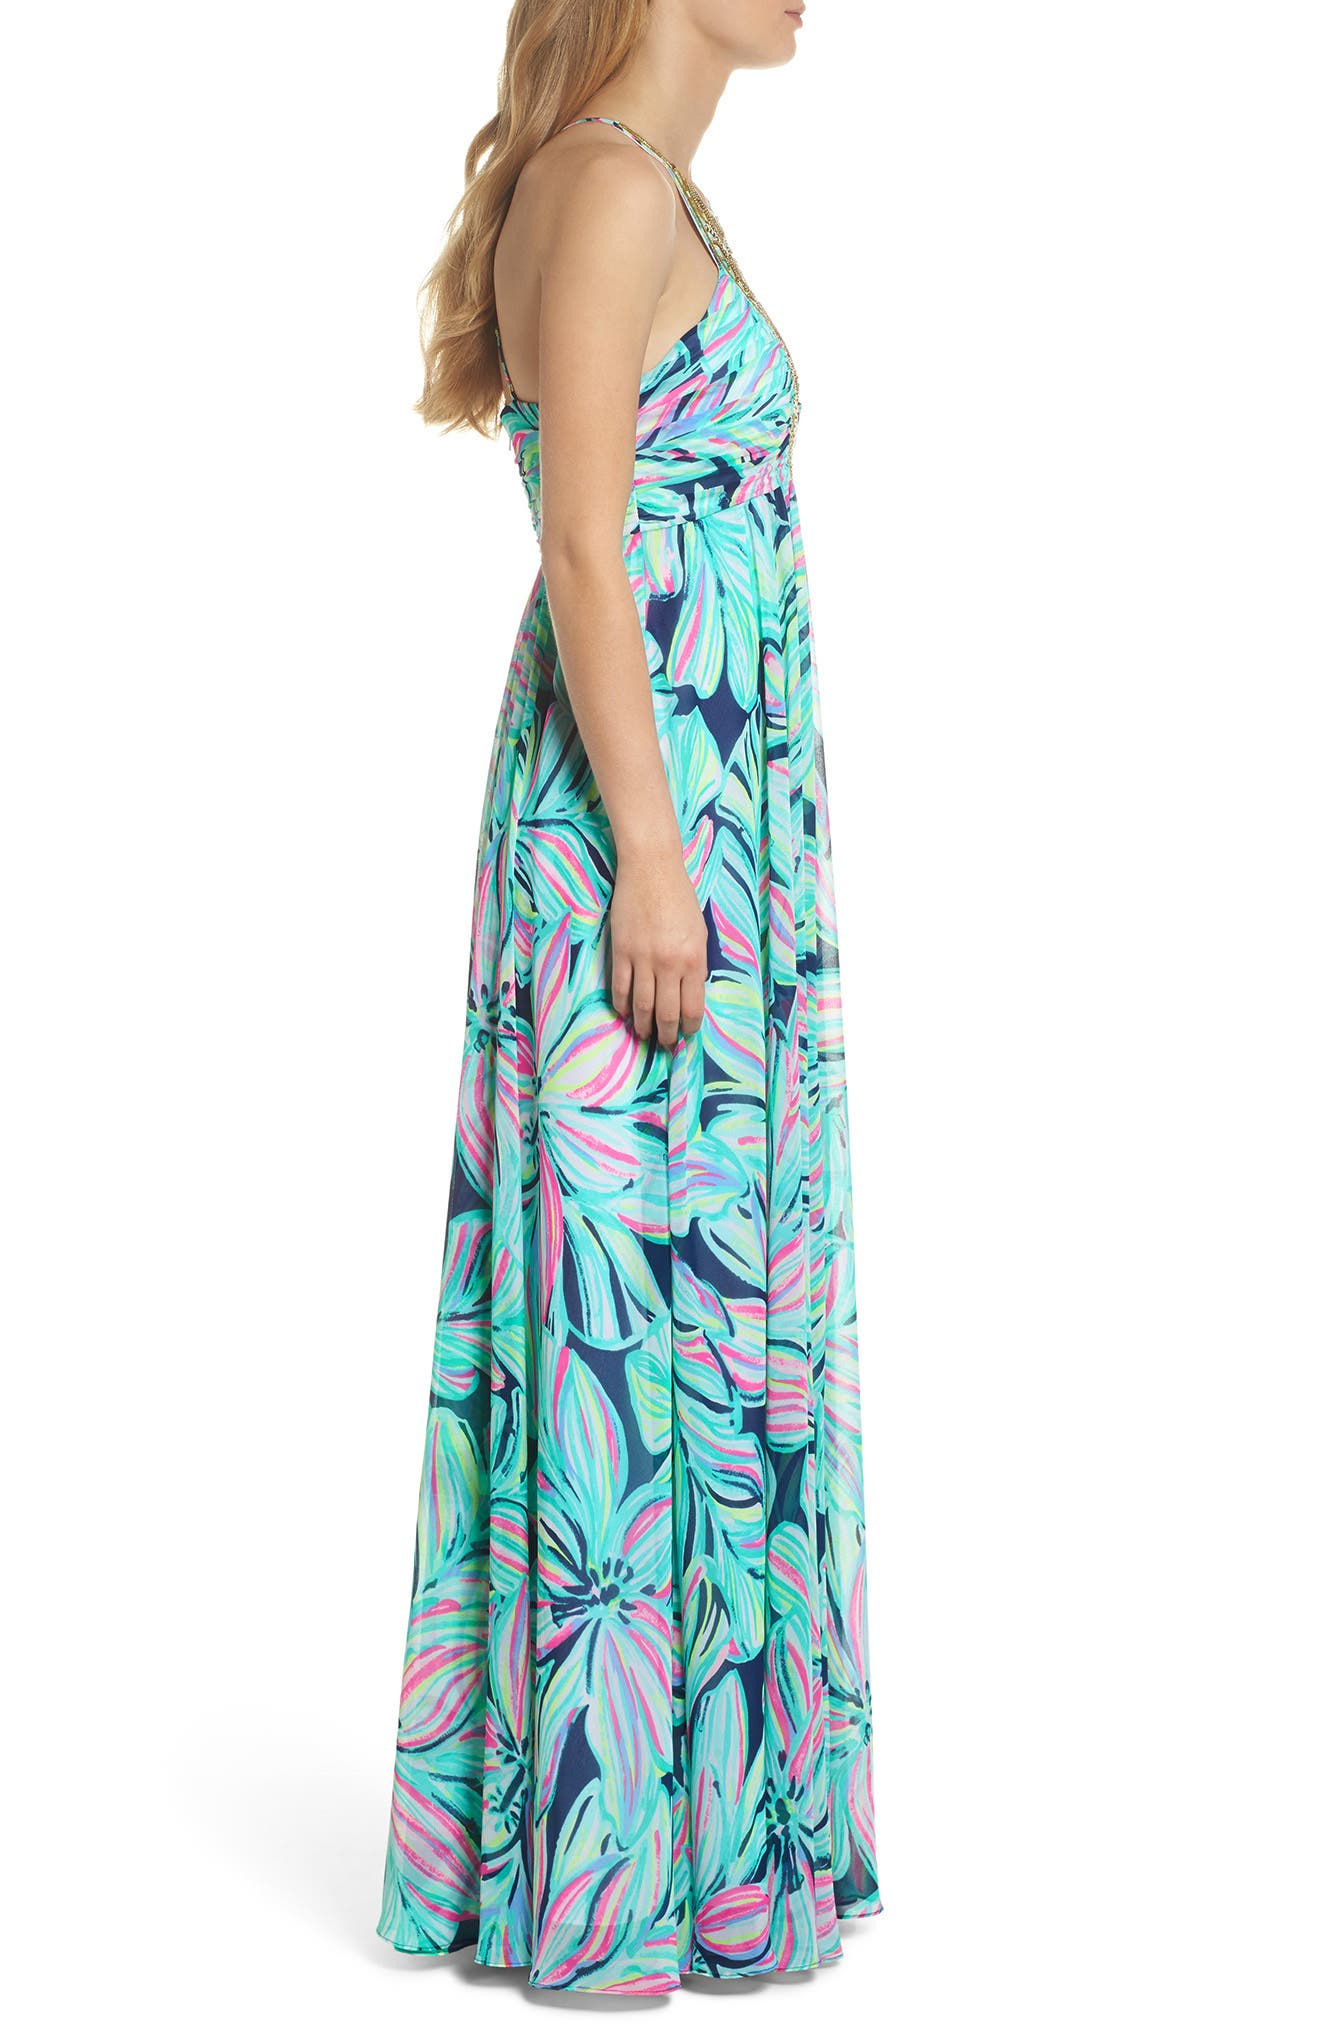 Lannette Embellished Chiffon Maxi Dress,                             Alternate thumbnail 3, color,                             400